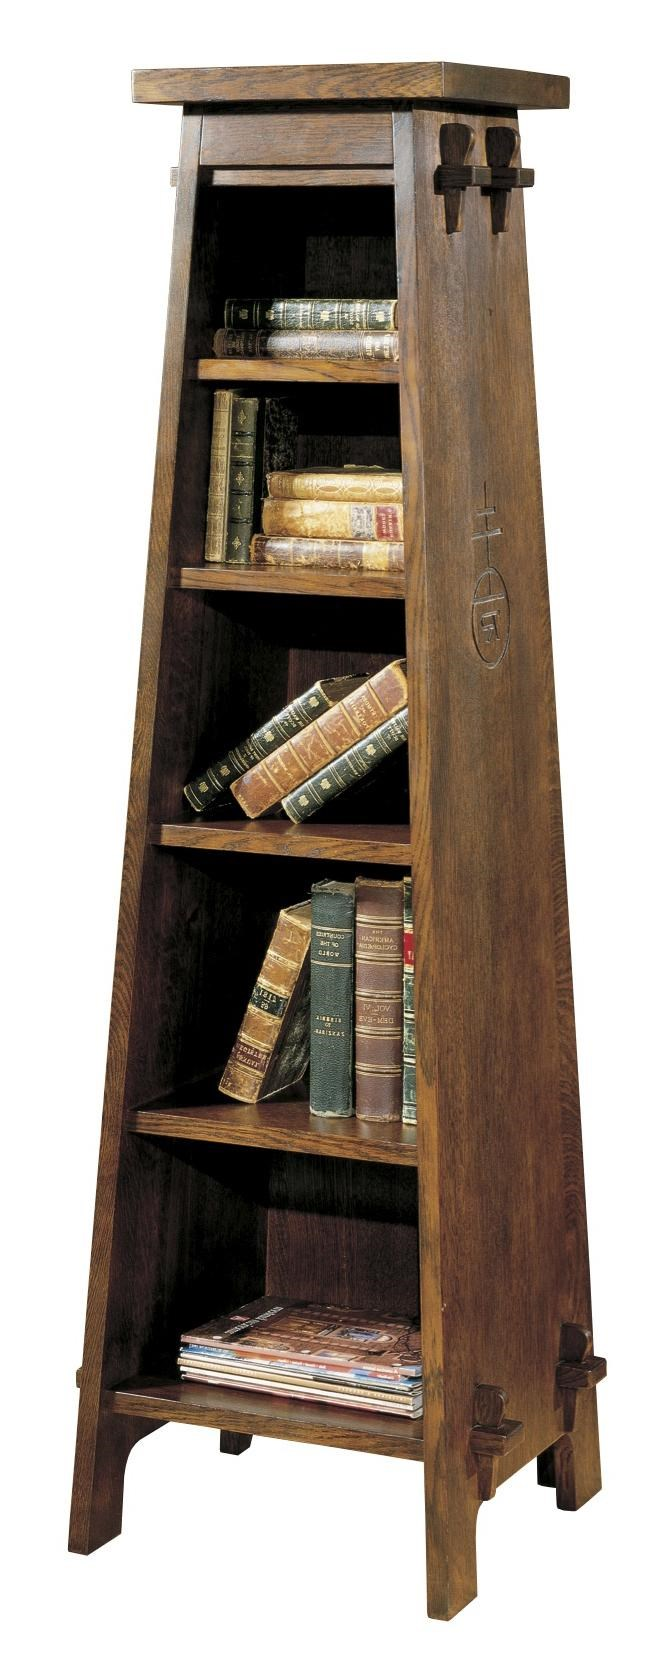 Stickley Oak Mission Classics Roycroft Tiered Shelf Magazine Pedestal    Jacksonville Furniture Mart   Open Bookcase